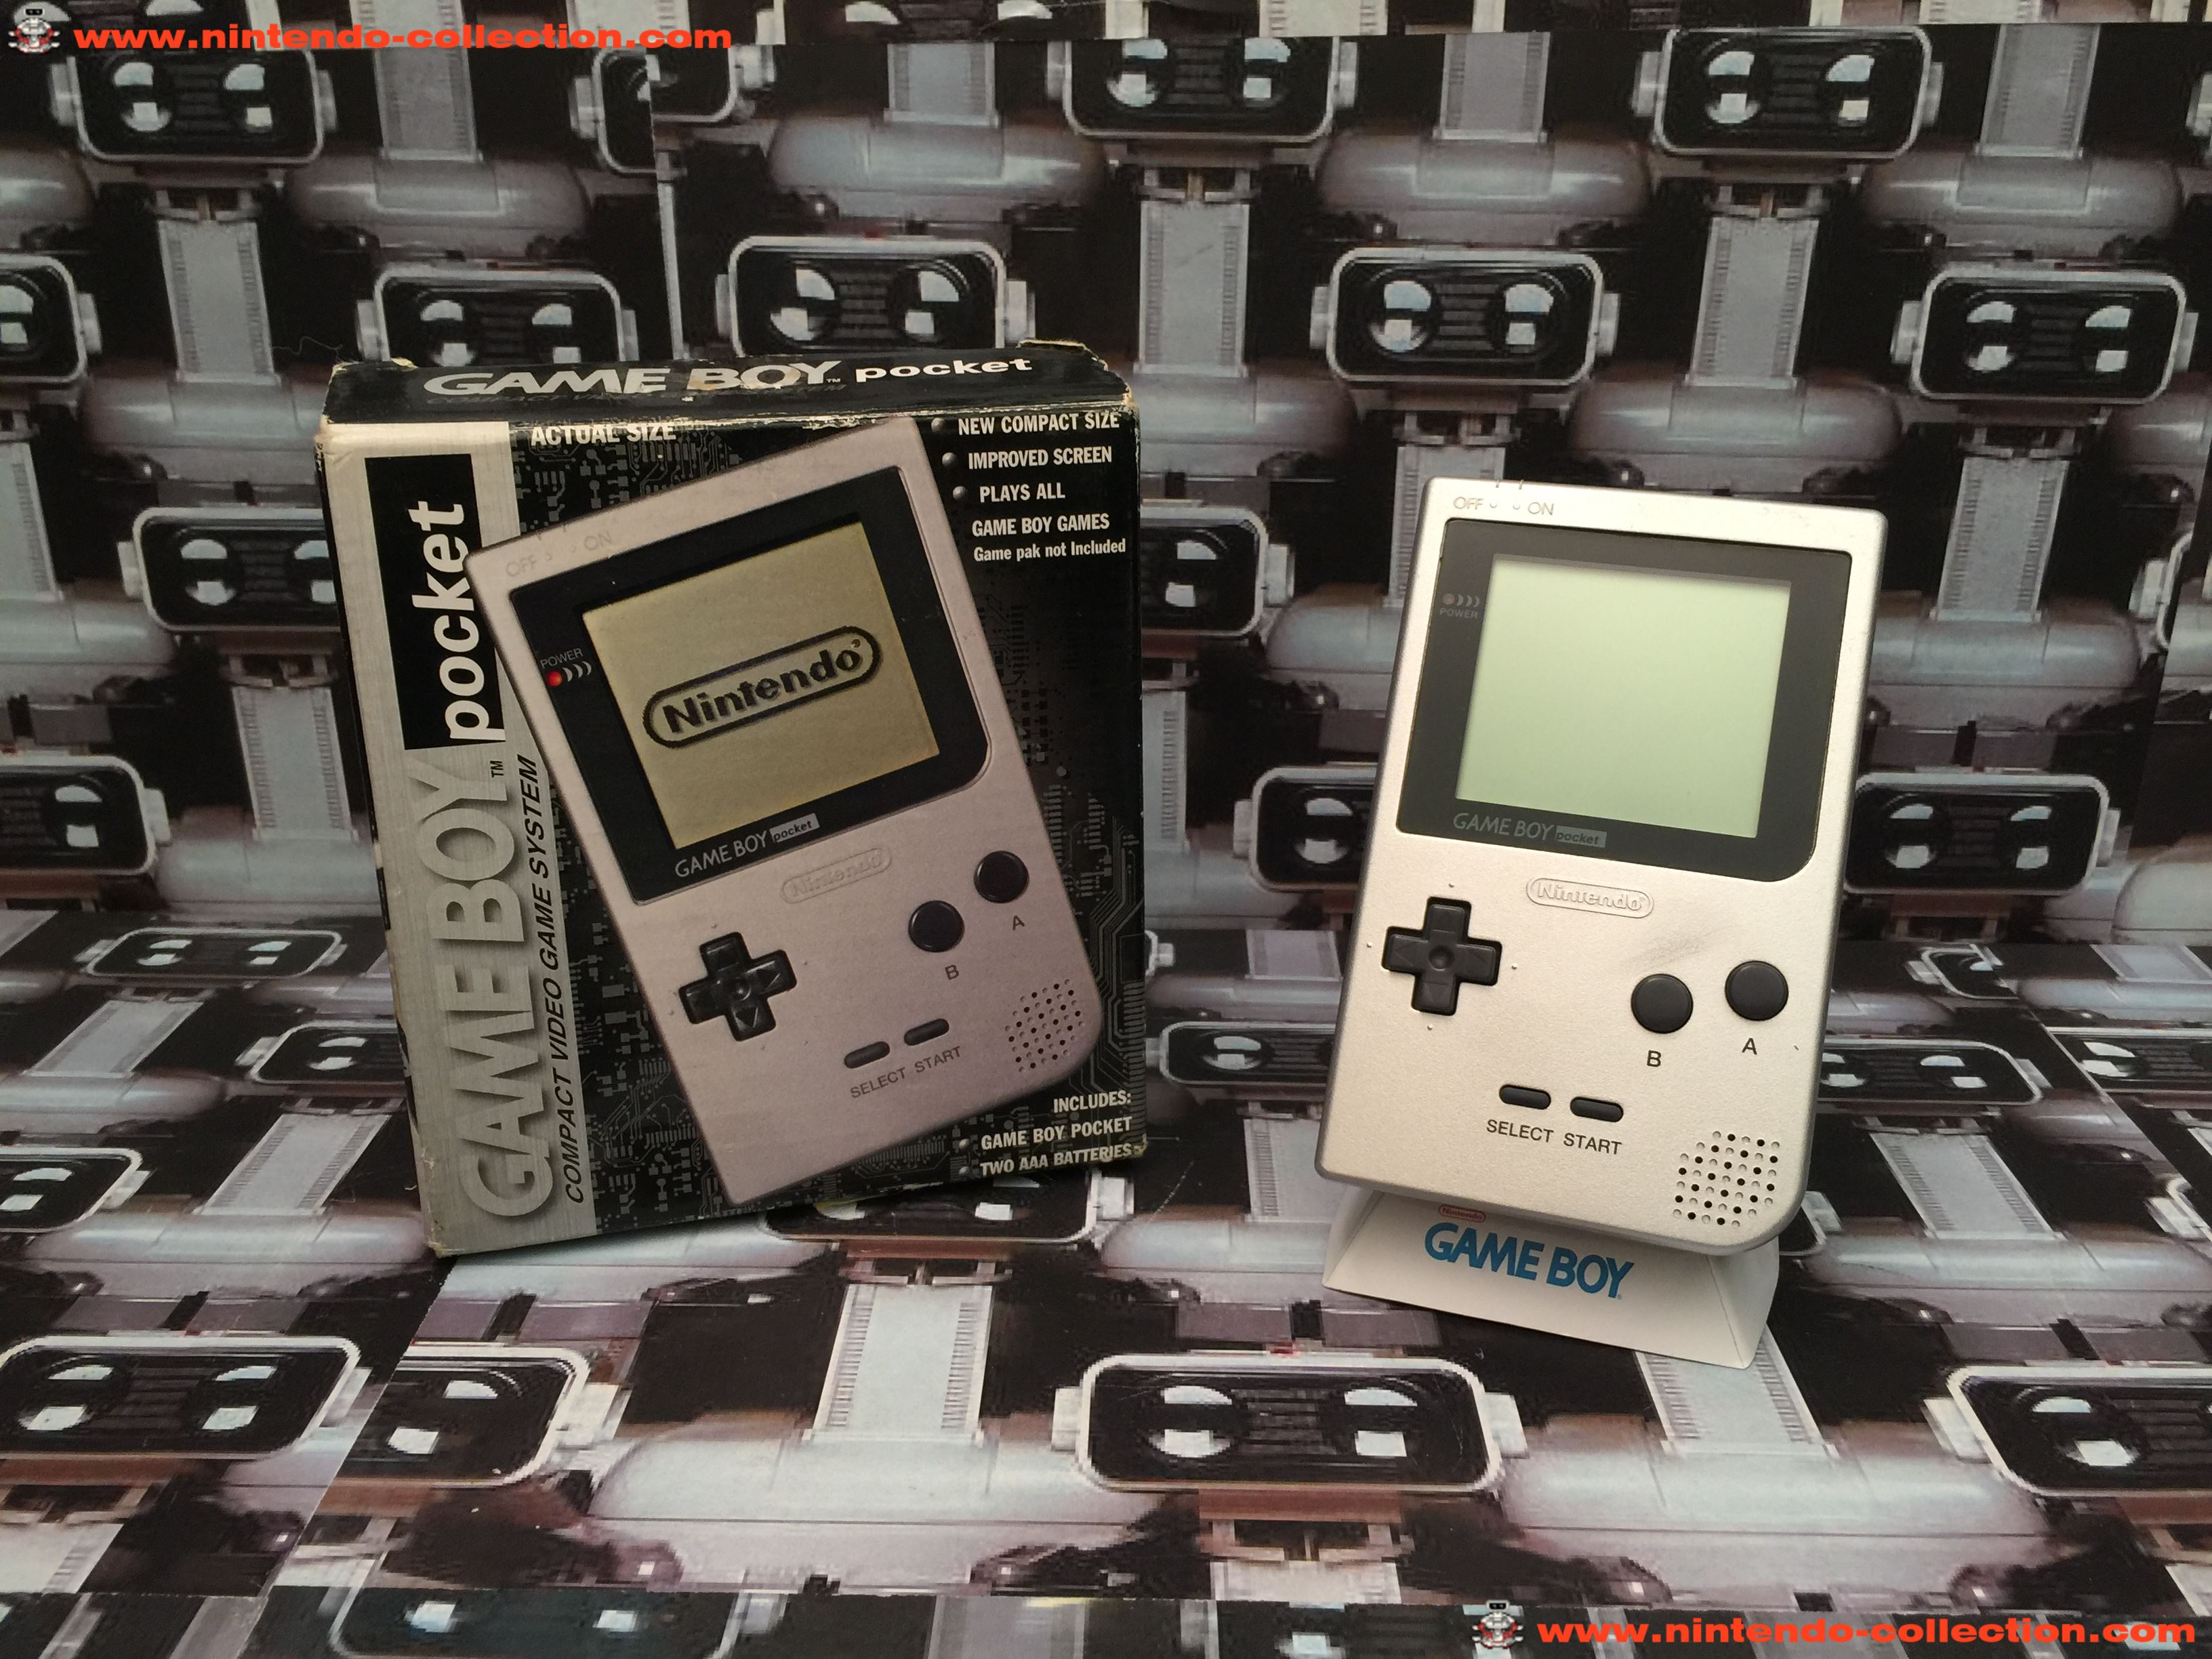 www.nintendo-collection.com - Gameboy GB Pocket Silver Argent en boite in box European Europe